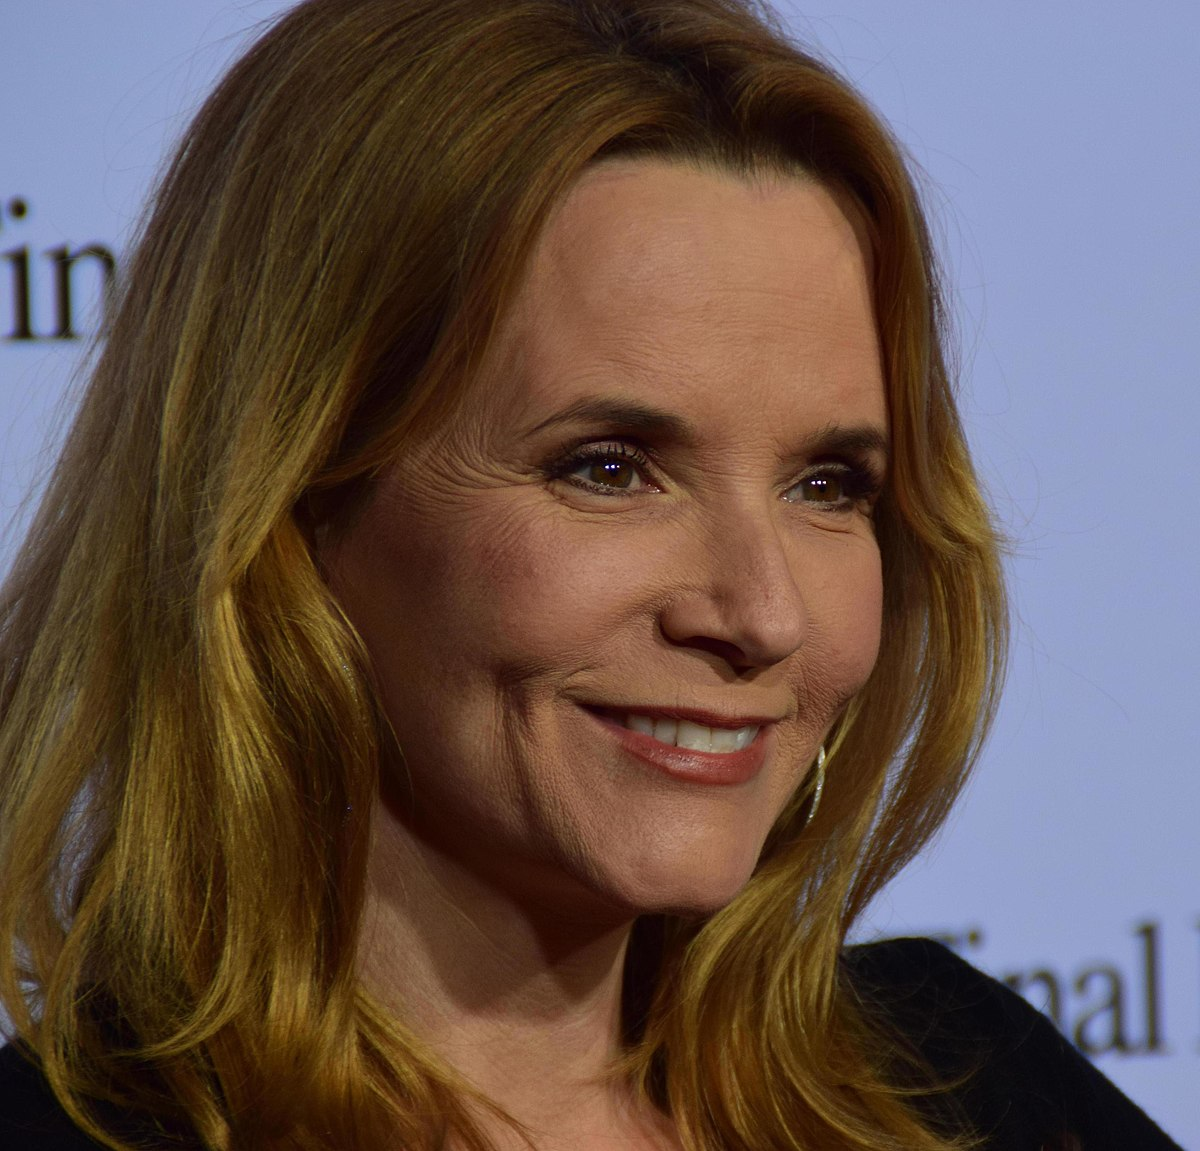 lea thompson - wikipedia